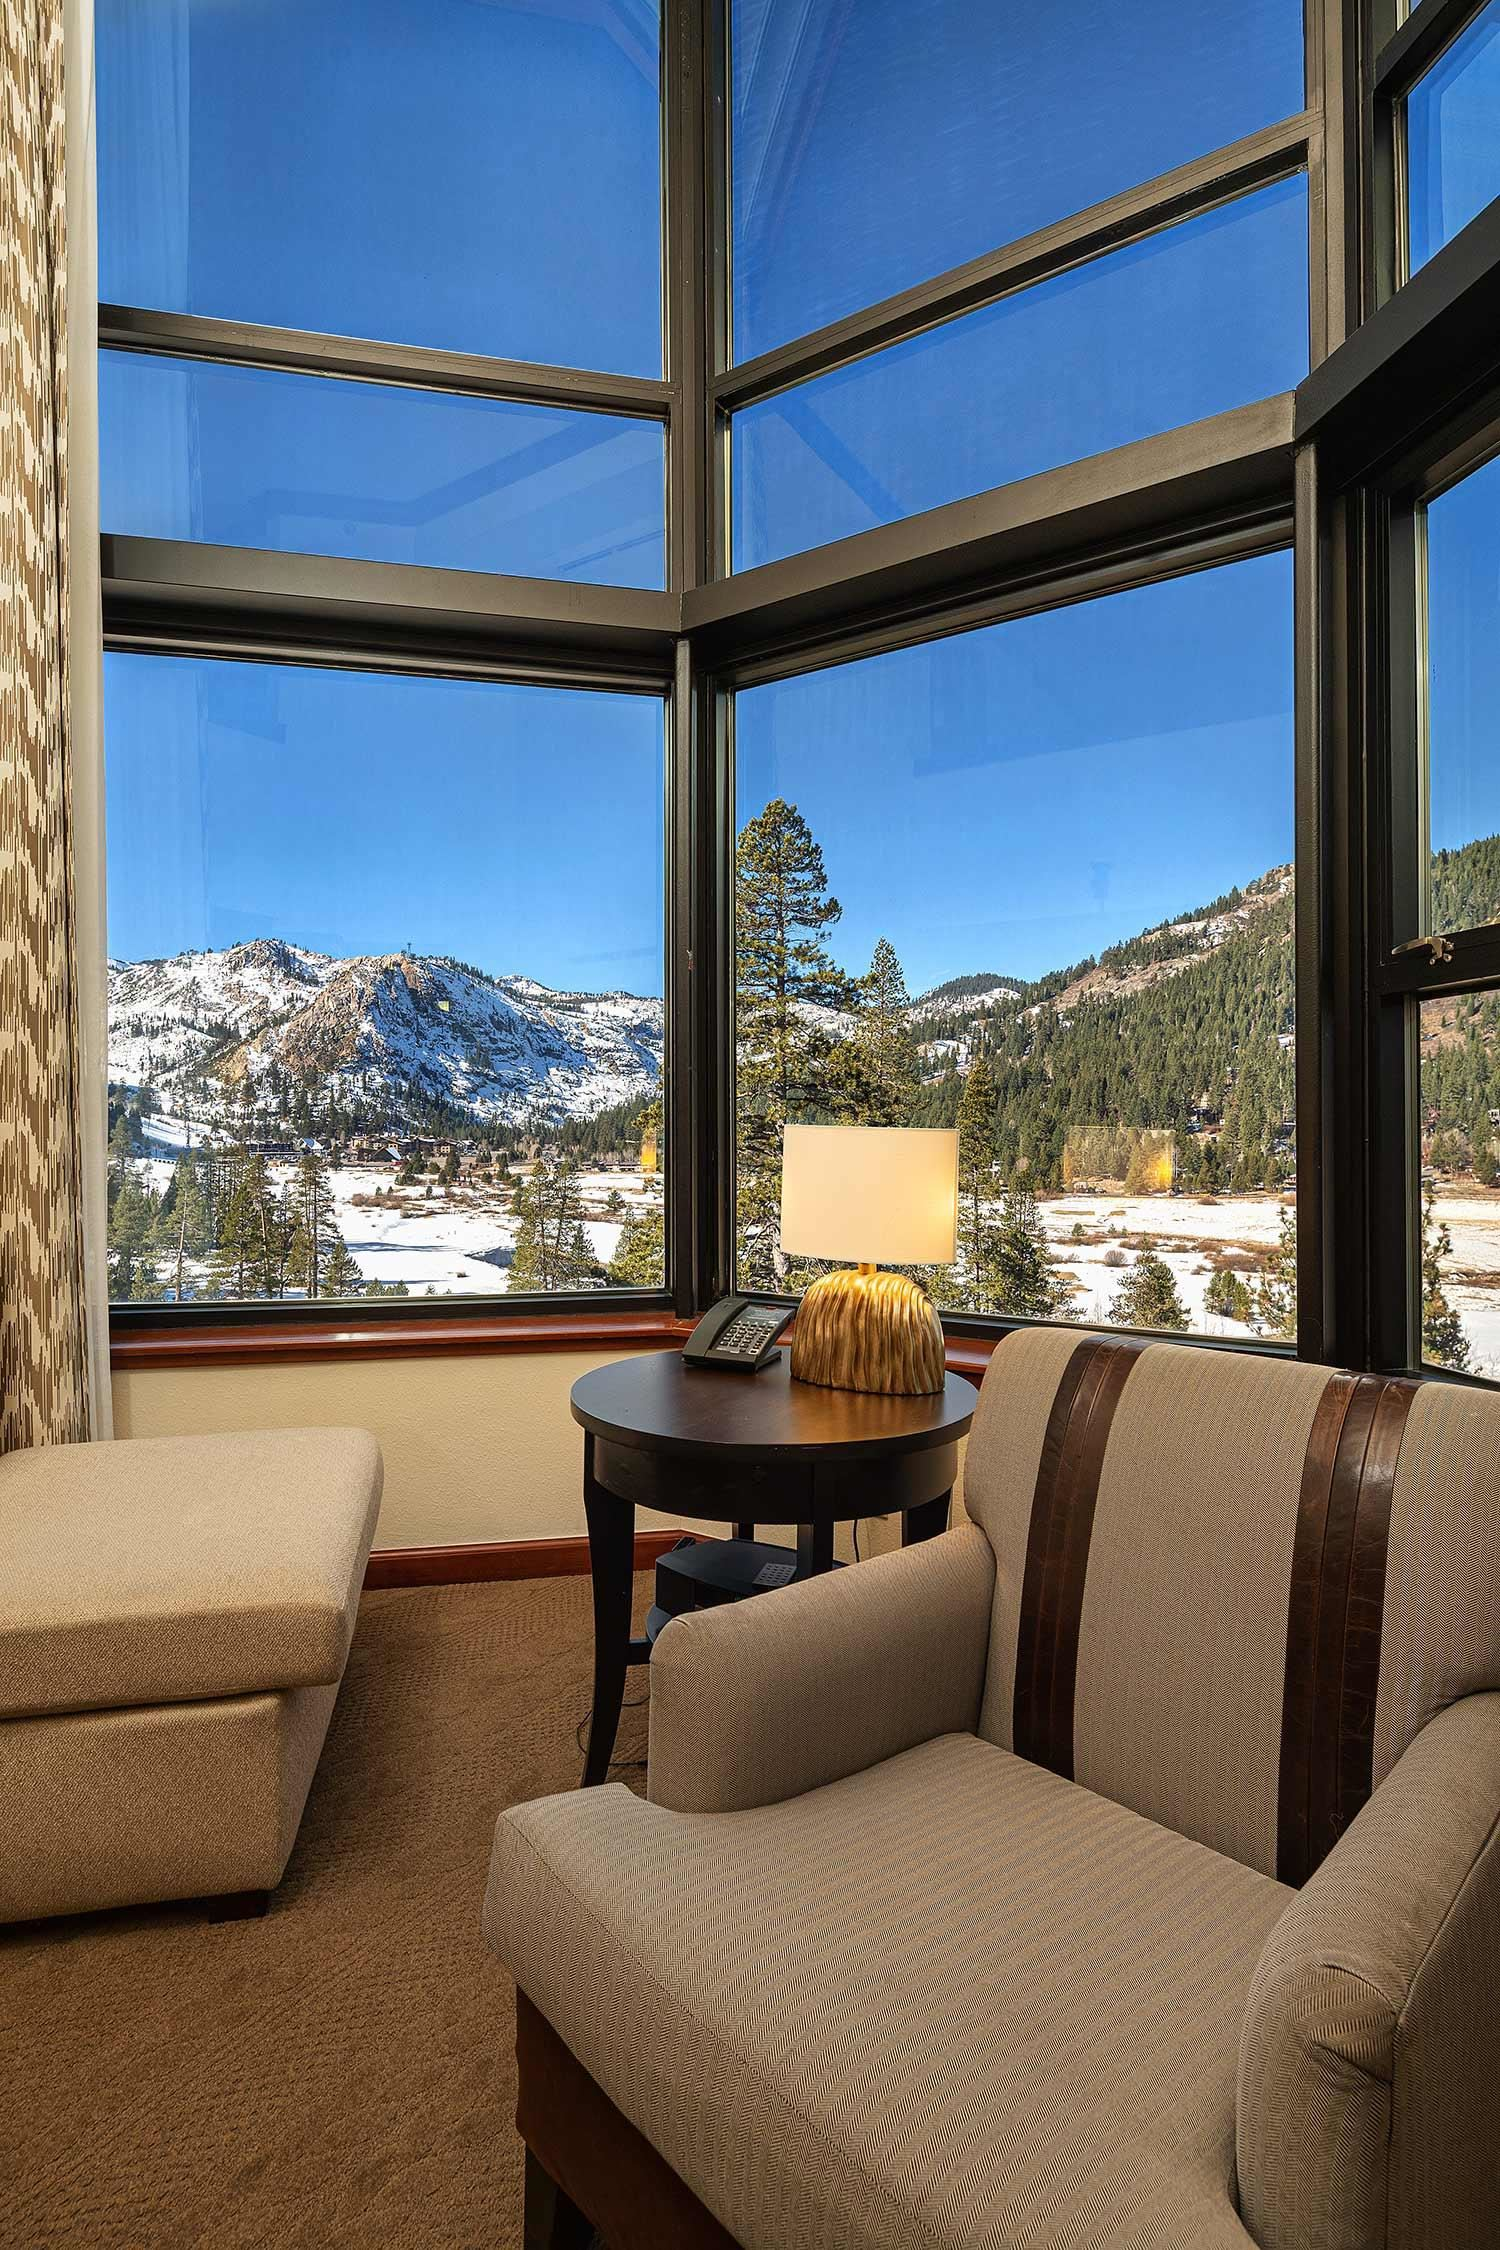 400 Squaw Creek Road 838 840, Olympic Valley, CA 96146